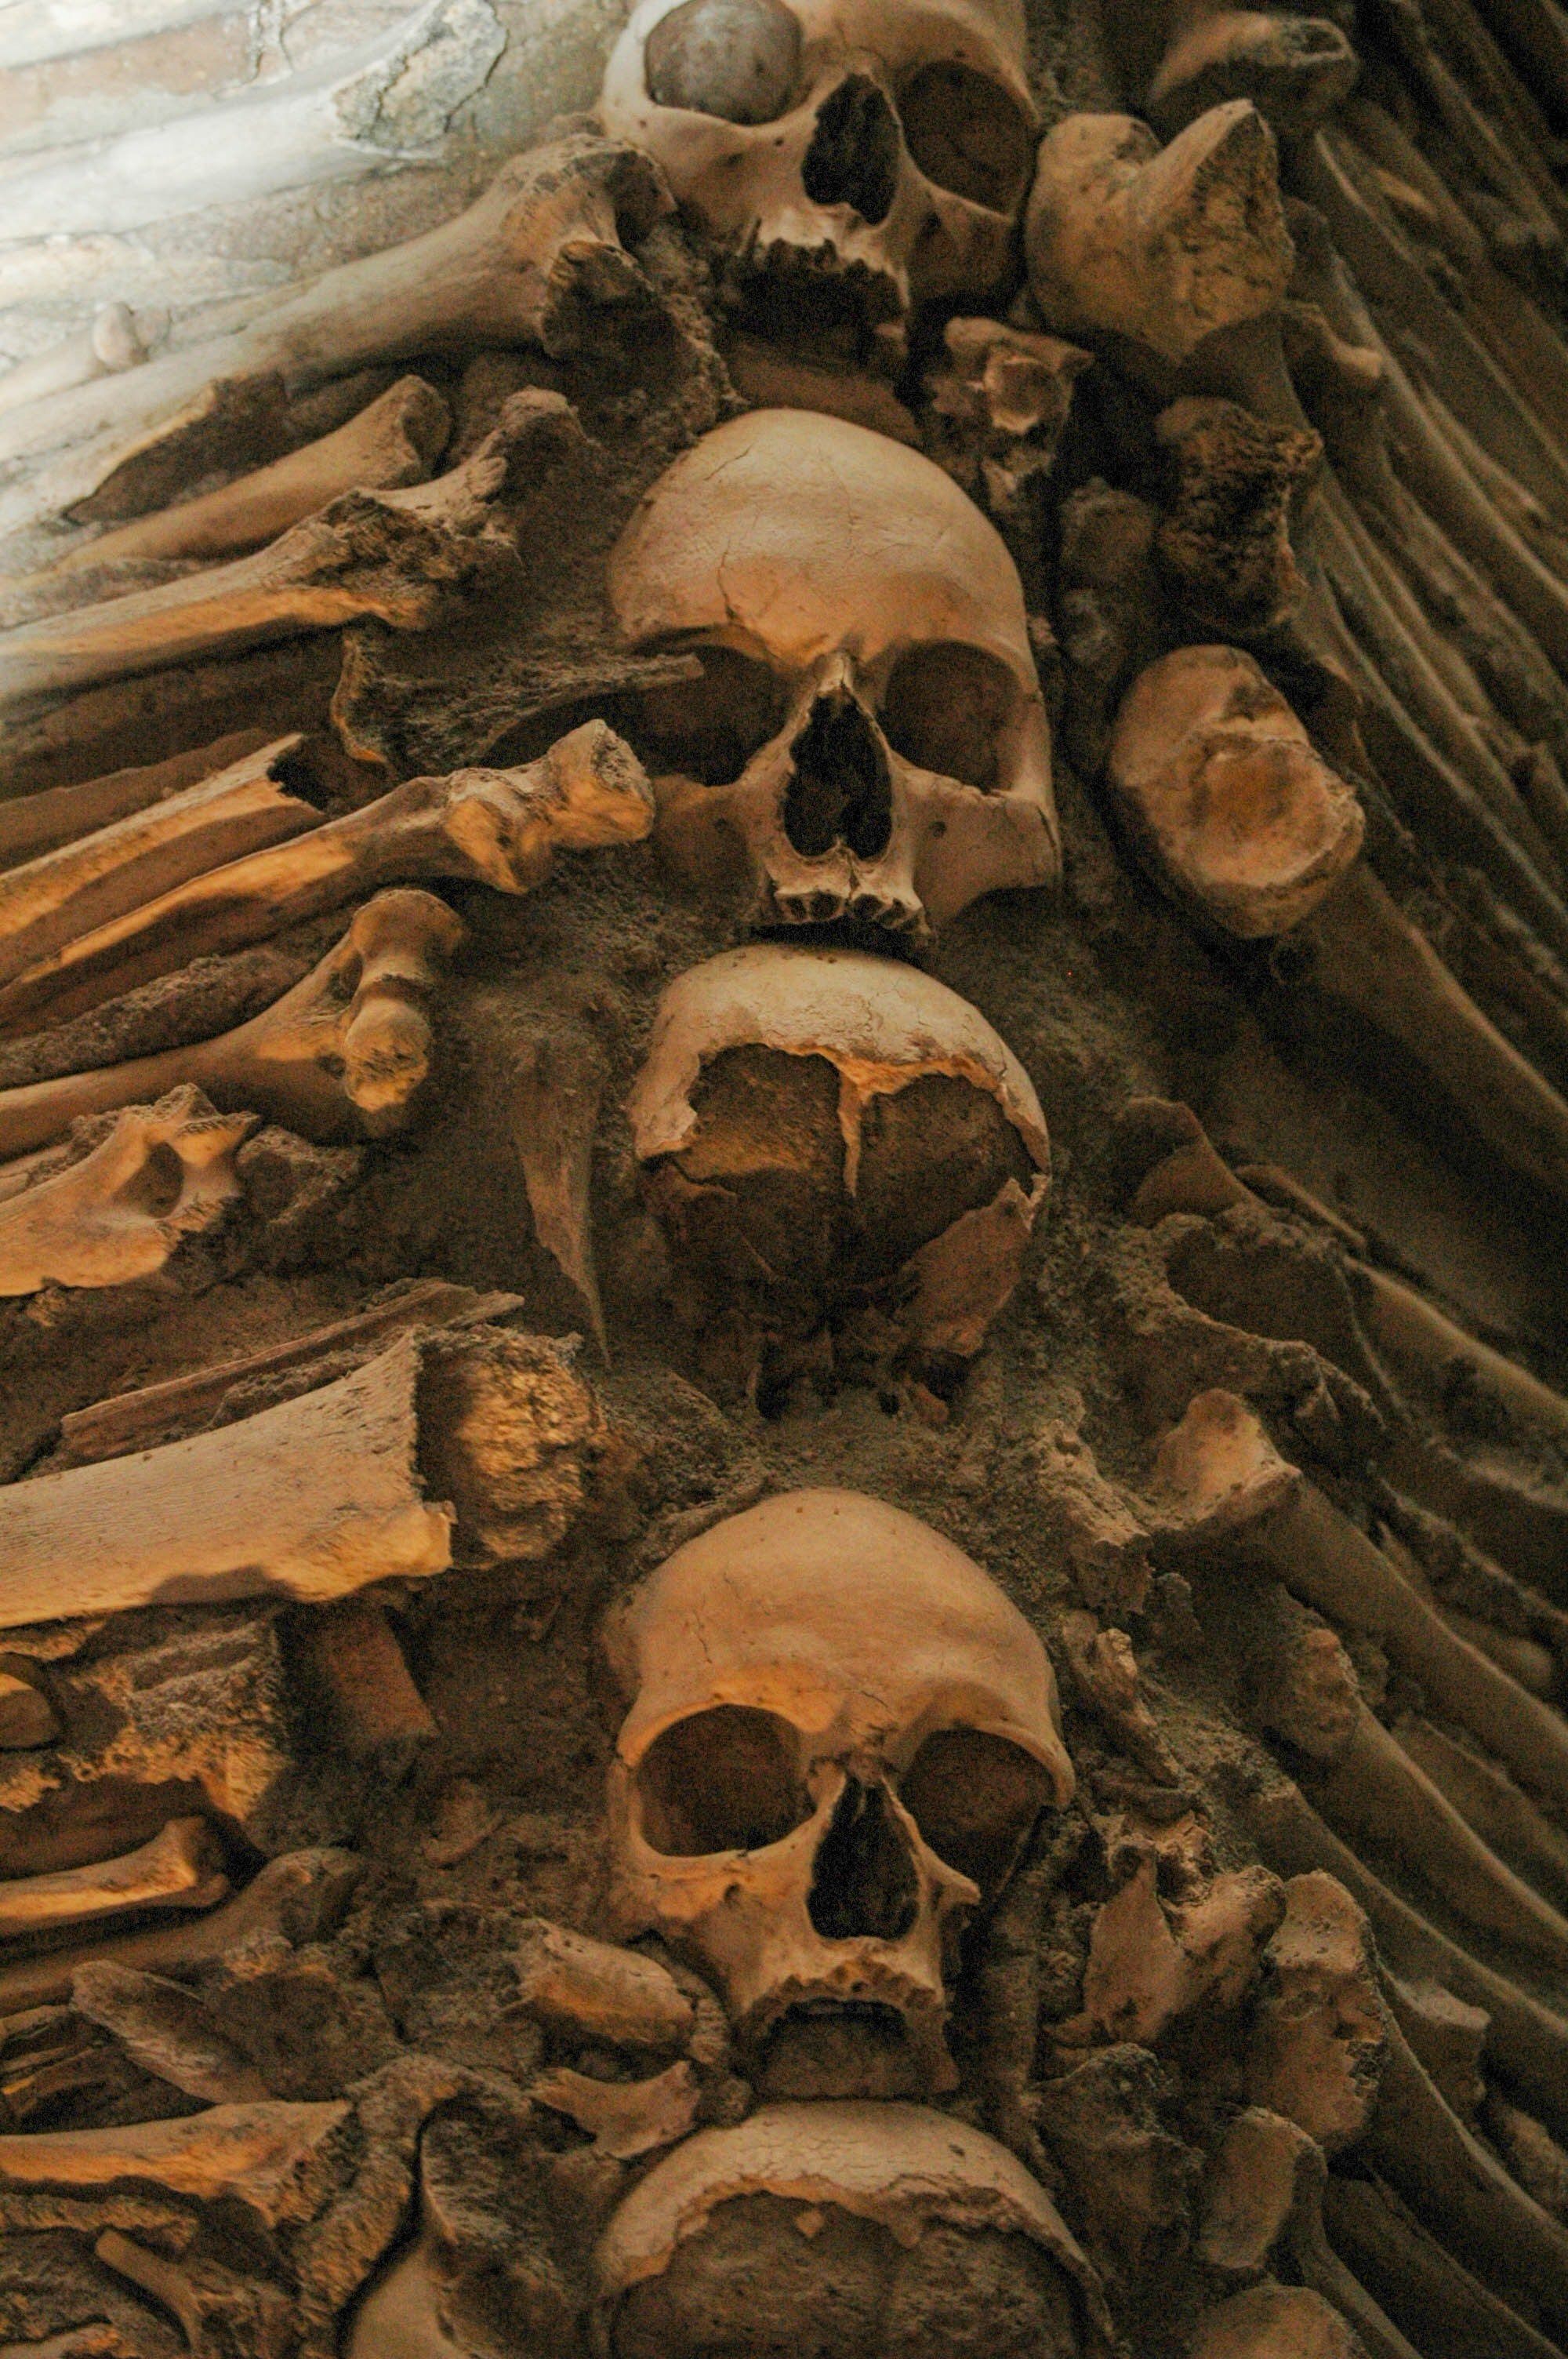 Pictured - A photo of human bones and skulls | Source: Pexels